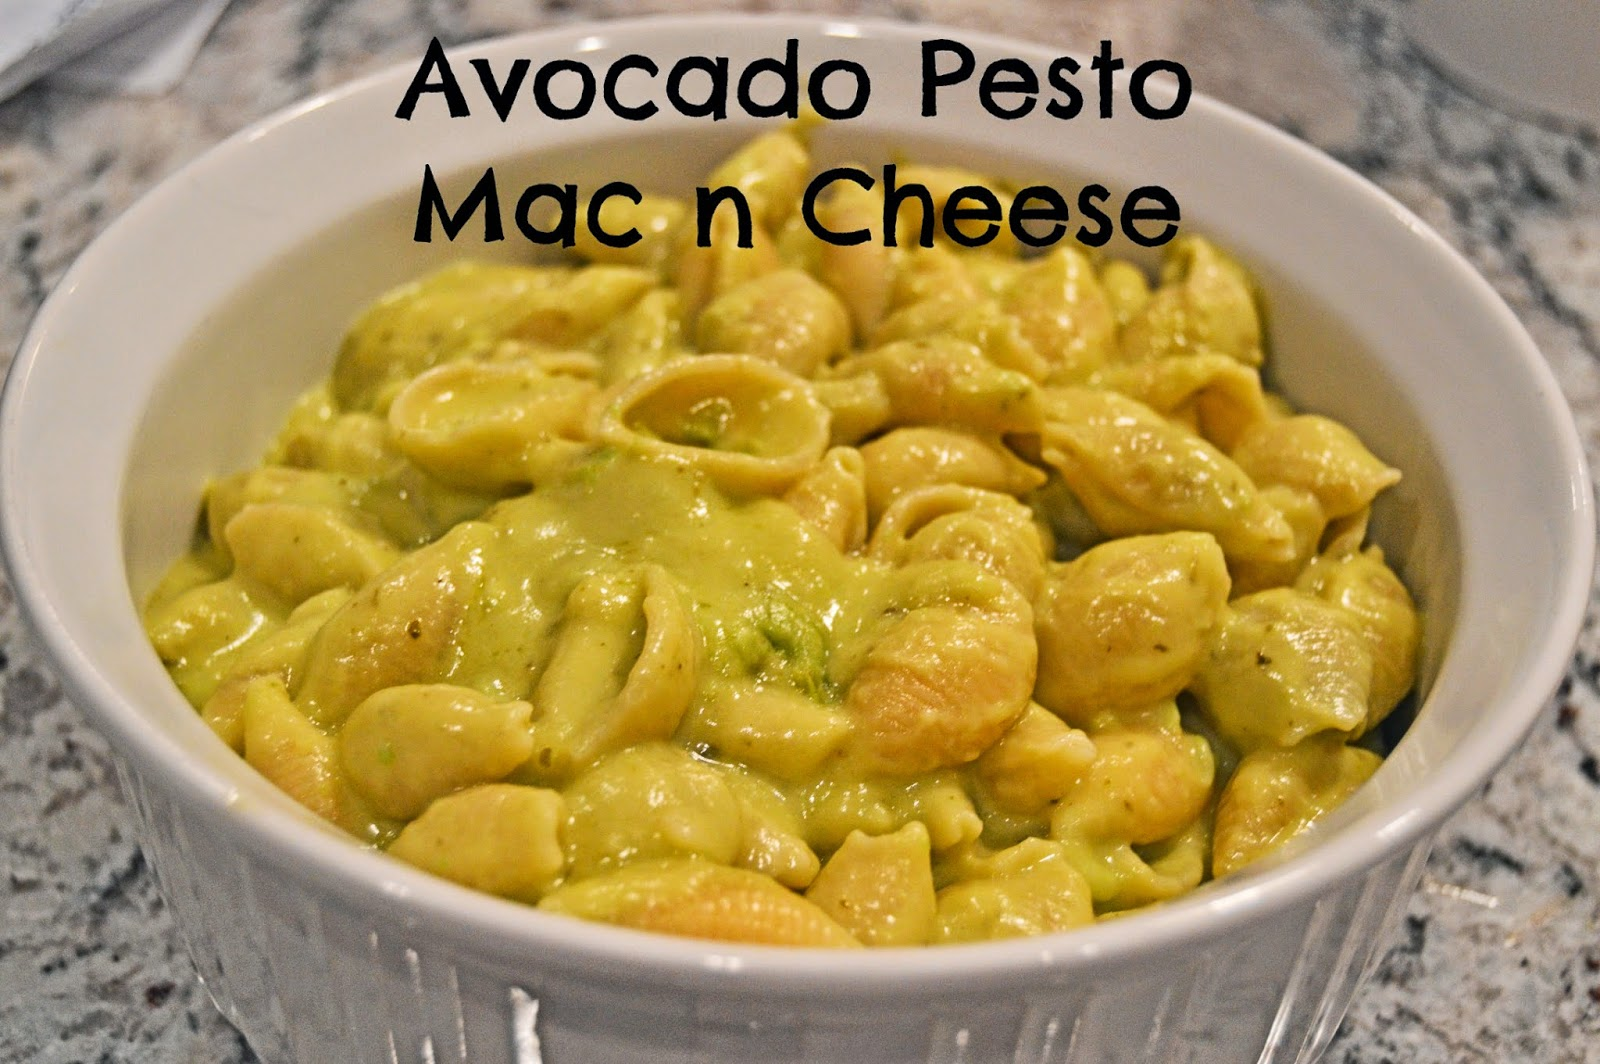 EASY Avocado Pesto Mac n Cheese Recipe